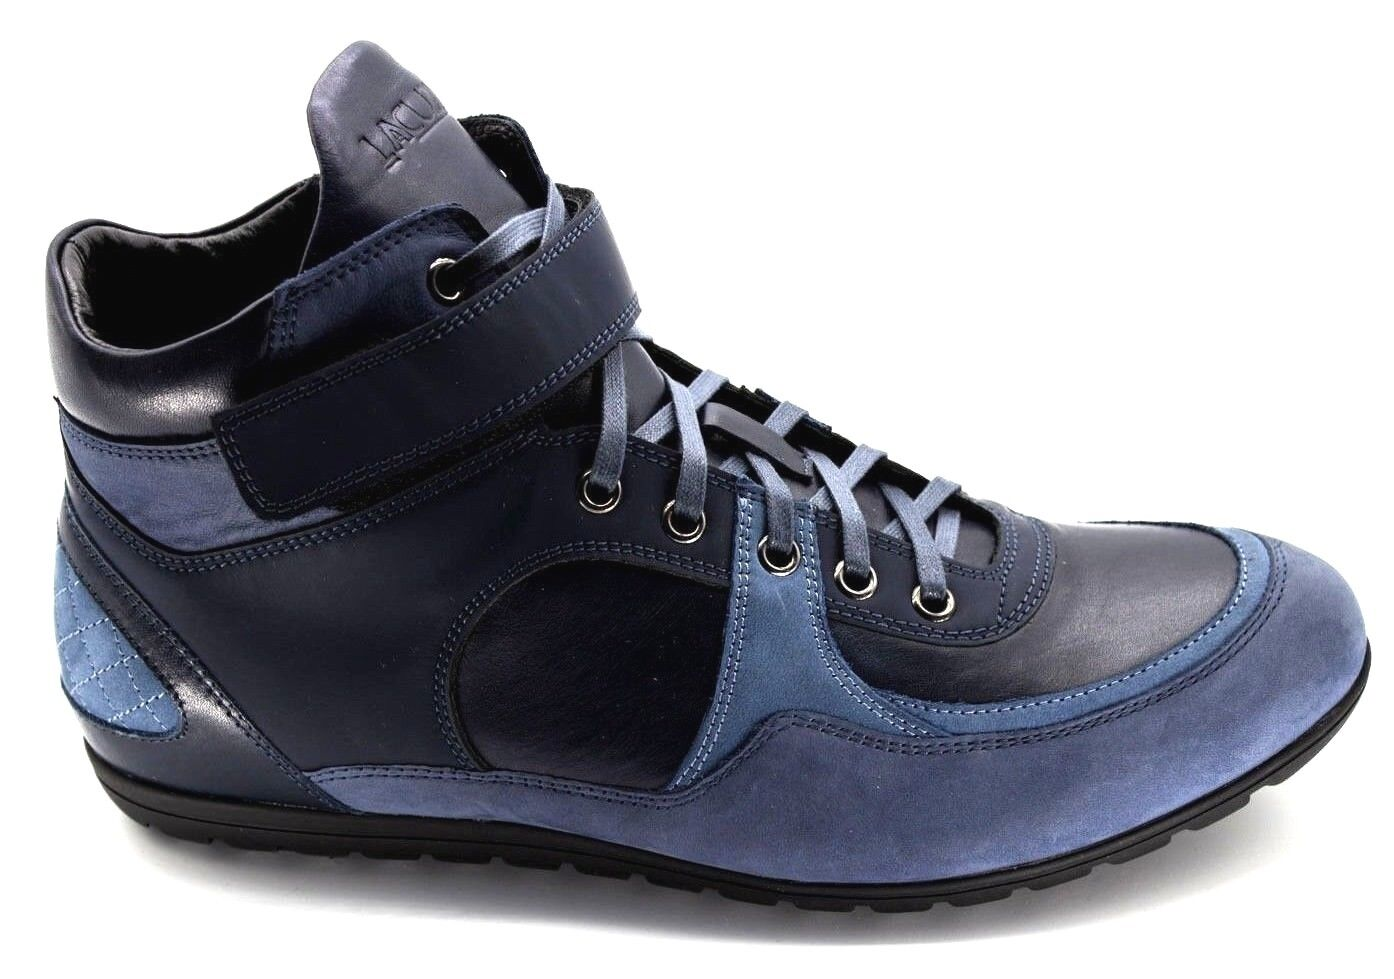 7140b72b49da 31 MENS NAVY REAL LEATHER HIGH TOP SNEAKERS BOXING SHOES ITALIAN NEW ...